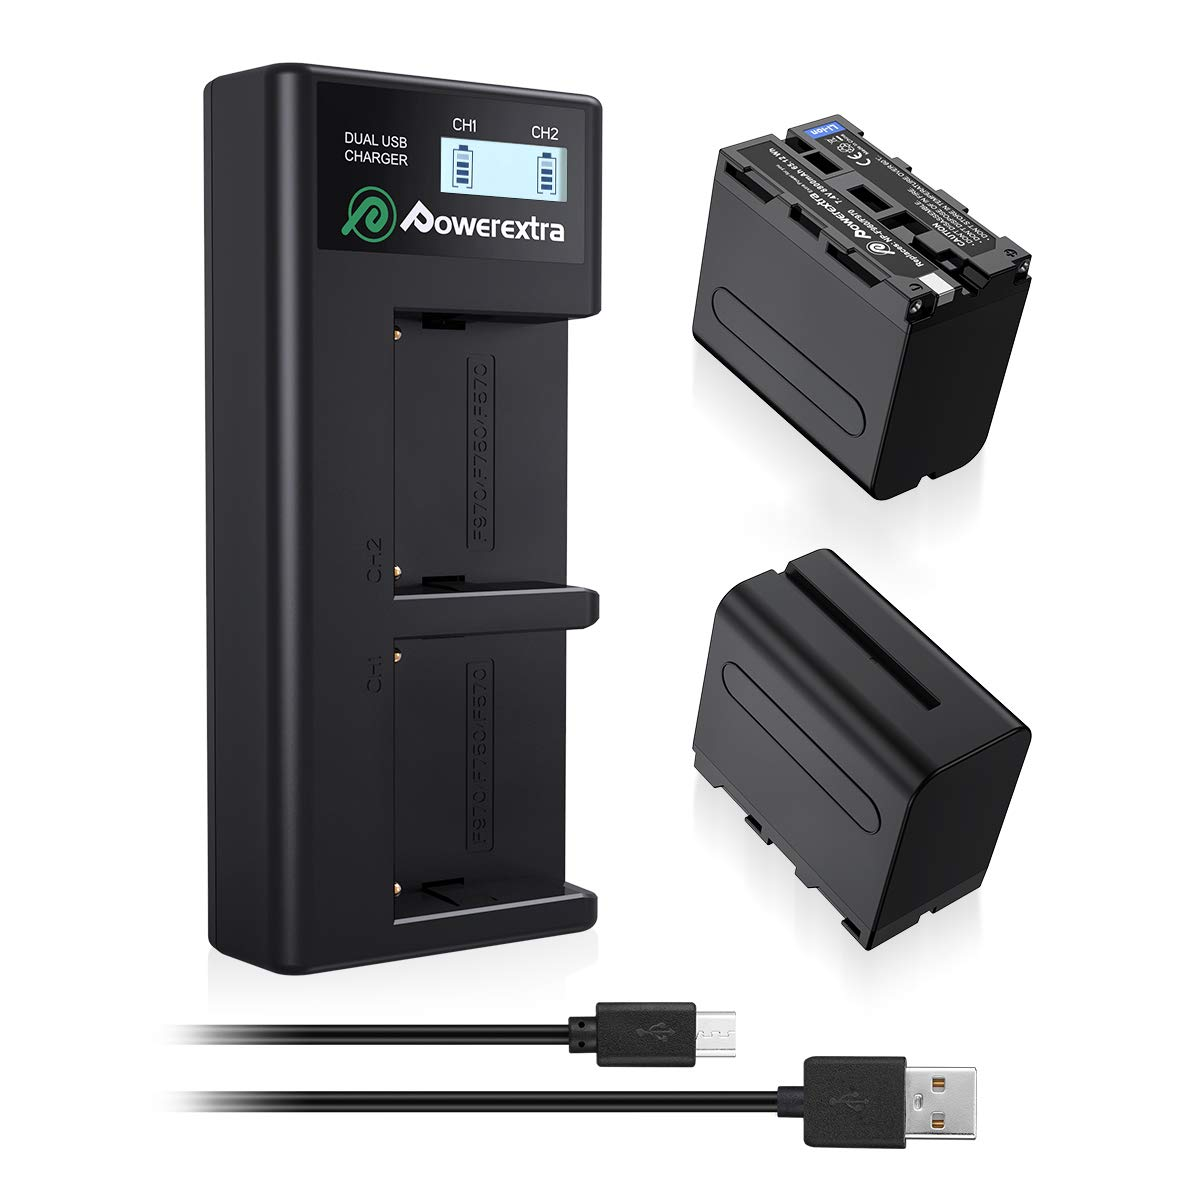 Powerextra 2 Pack Replacement Sony NP-F970 Battery and Smart LCD Display Dual USB Charger for Sony NP-F930 NP-F950 NP-F960 Battery and Sony CCD-SC55, TR516, TR716, TR818, TR910, TR917 by Powerextra (Image #1)